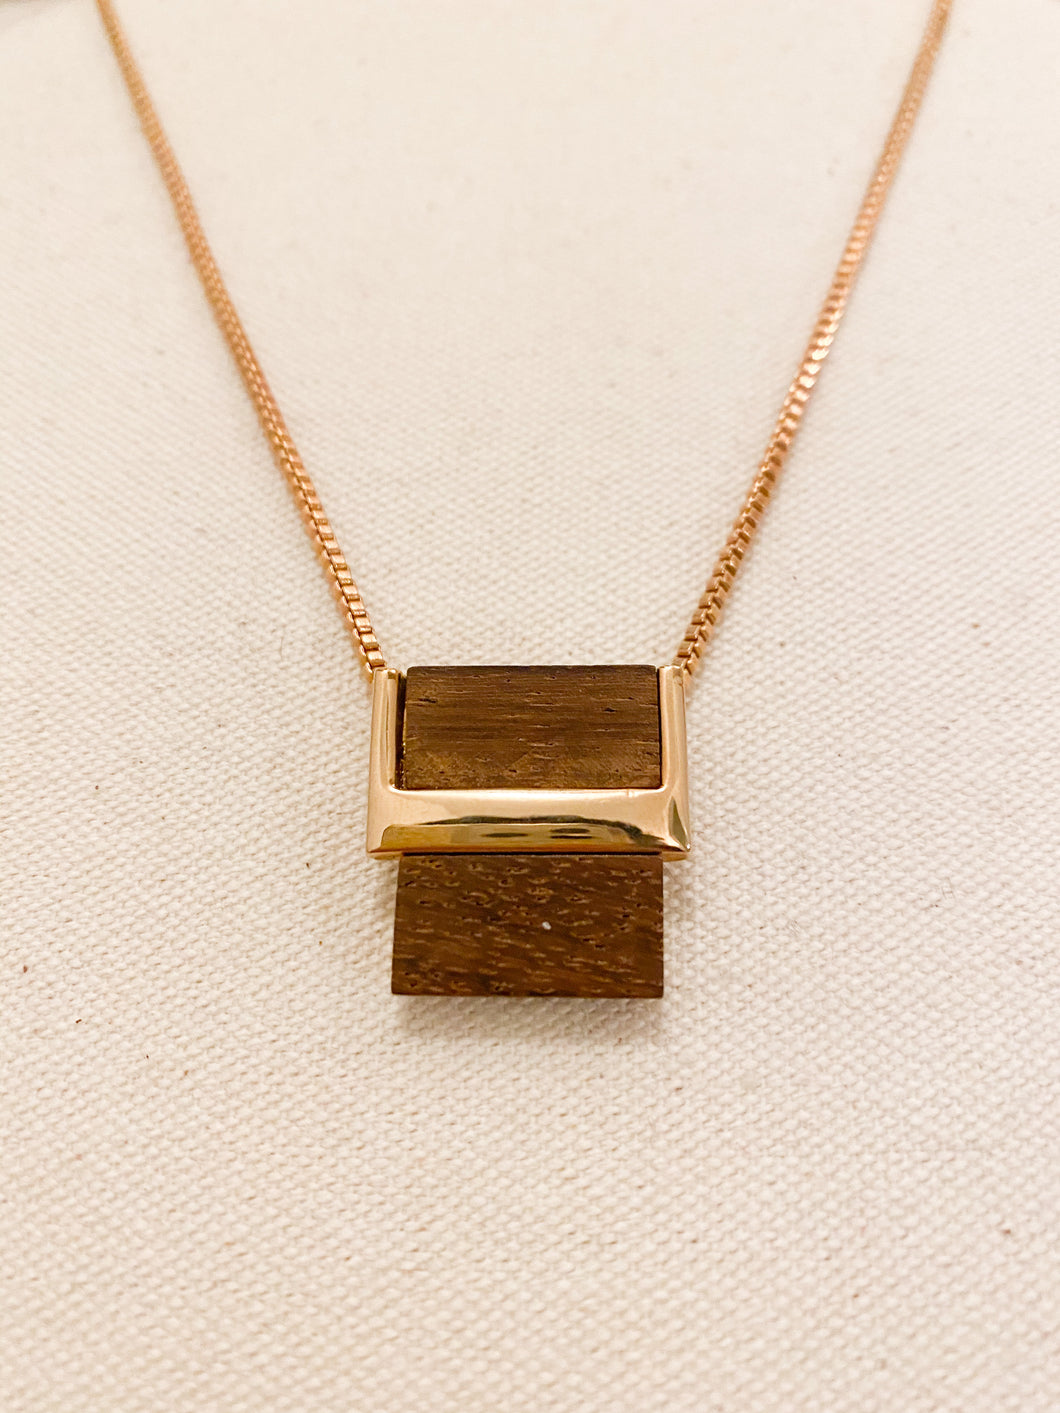 Rose gold and wood necklace, 1970's